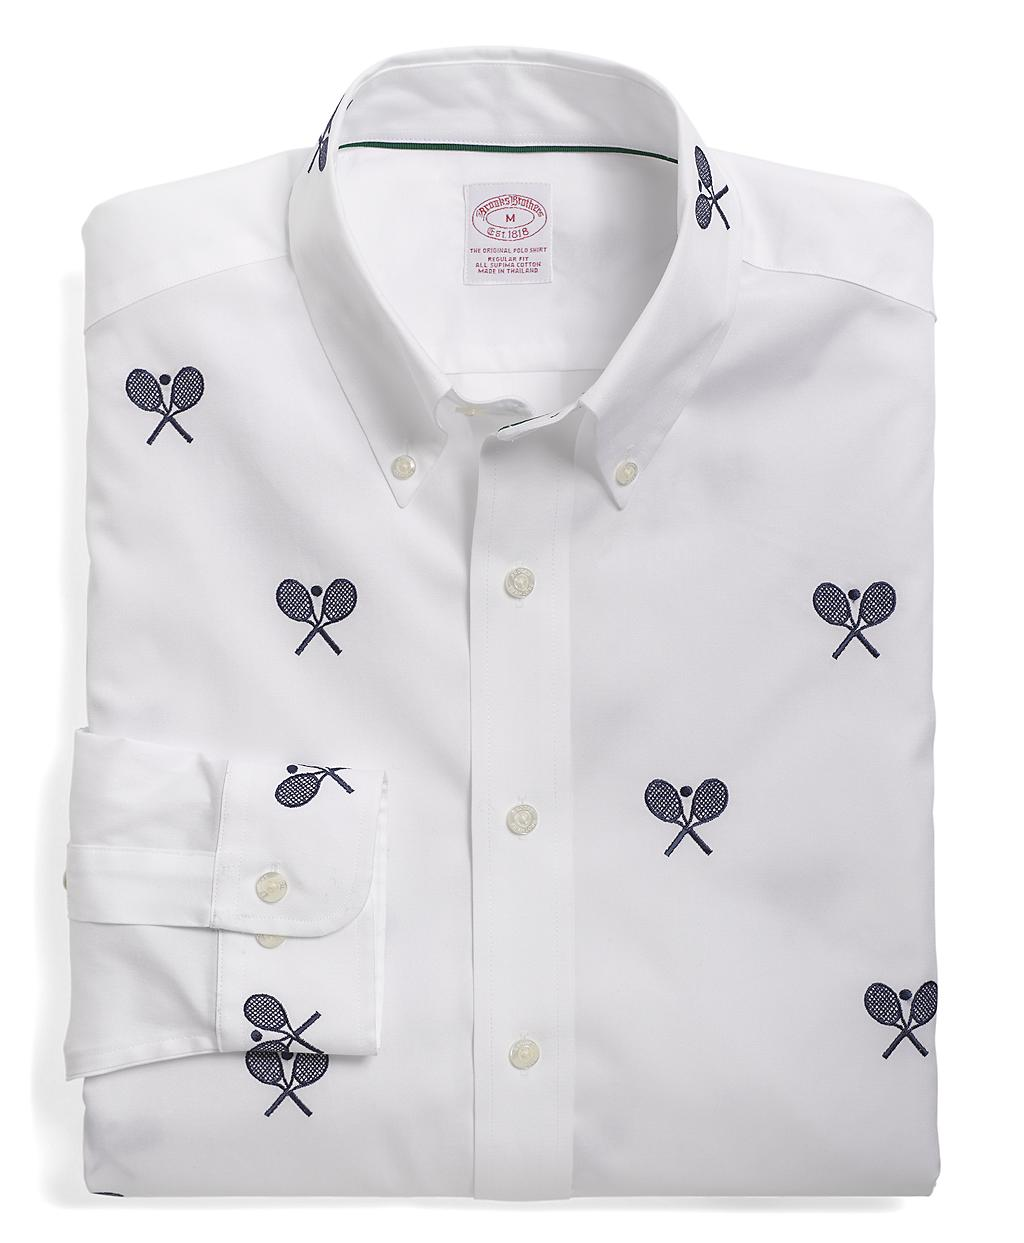 Brooks brothers regular fit tennis racquet embroidered Brooks brothers shirt size guide